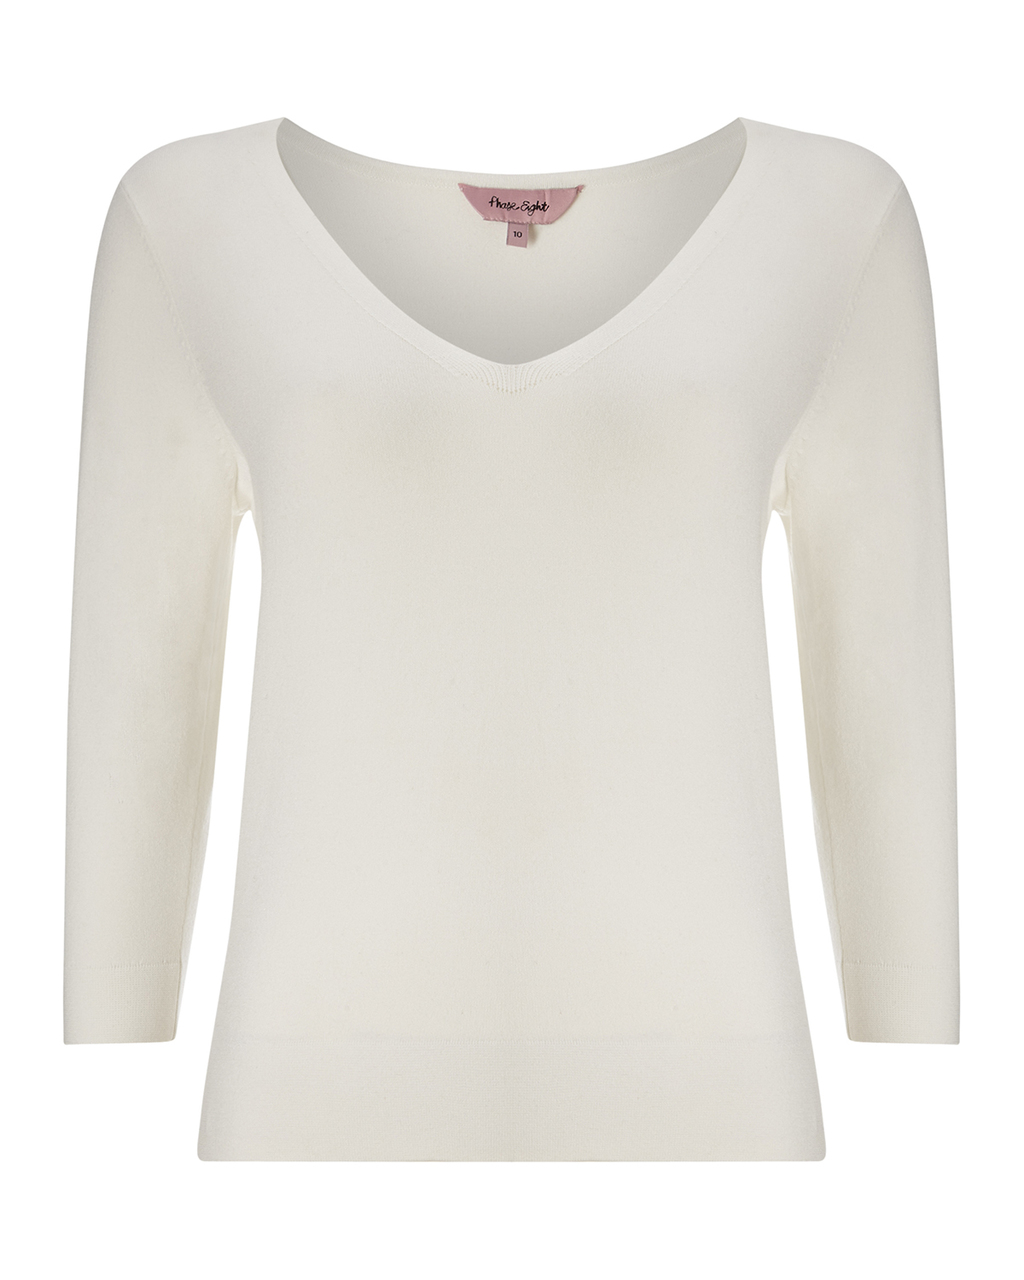 Lizette Stitch Knit - neckline: v-neck; pattern: plain; style: standard; predominant colour: ivory/cream; occasions: casual, creative work; length: standard; fibres: cotton - mix; fit: slim fit; sleeve length: 3/4 length; sleeve style: standard; texture group: knits/crochet; pattern type: knitted - fine stitch; season: a/w 2015; wardrobe: basic